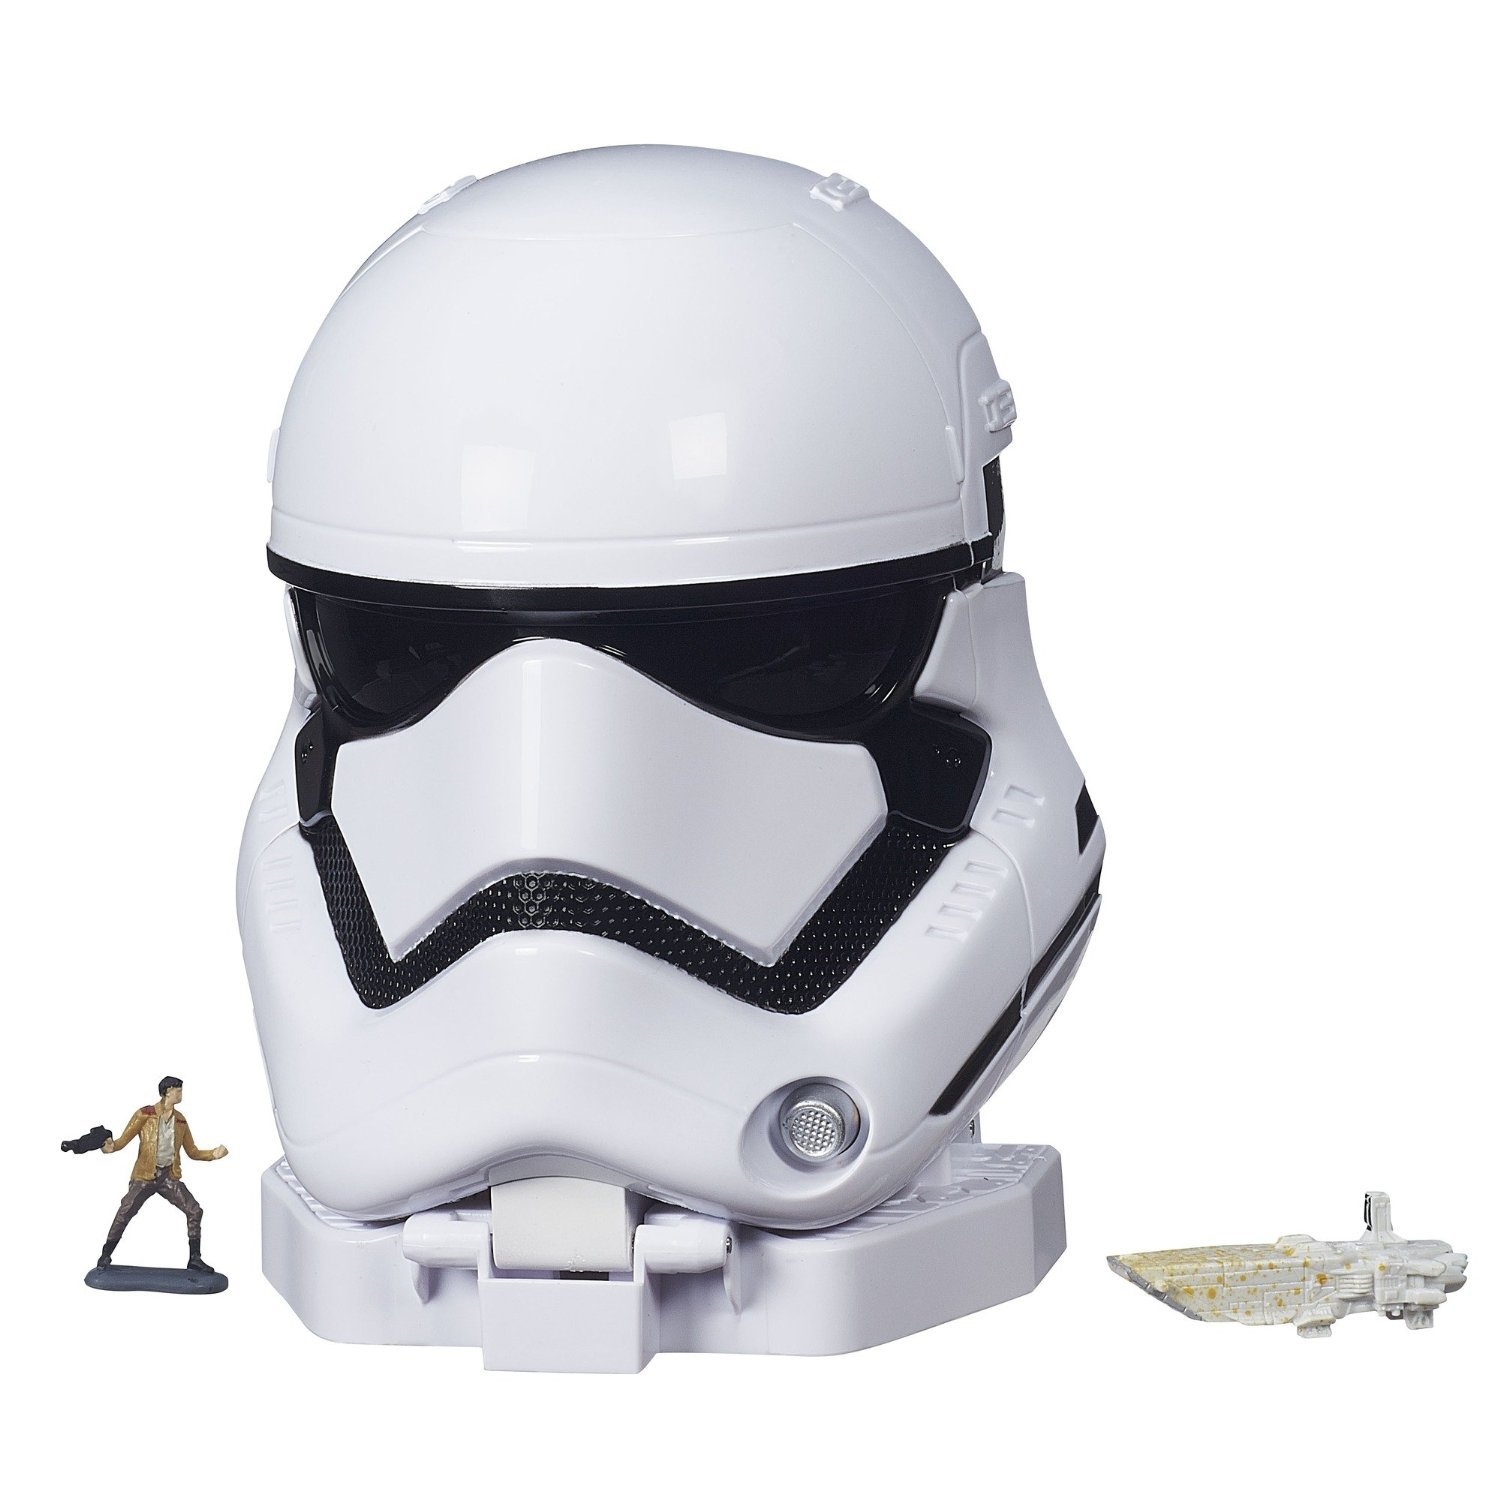 Figurina Star Wars The Force Awakens, Set Micro Machines, First Order Stormtrooper